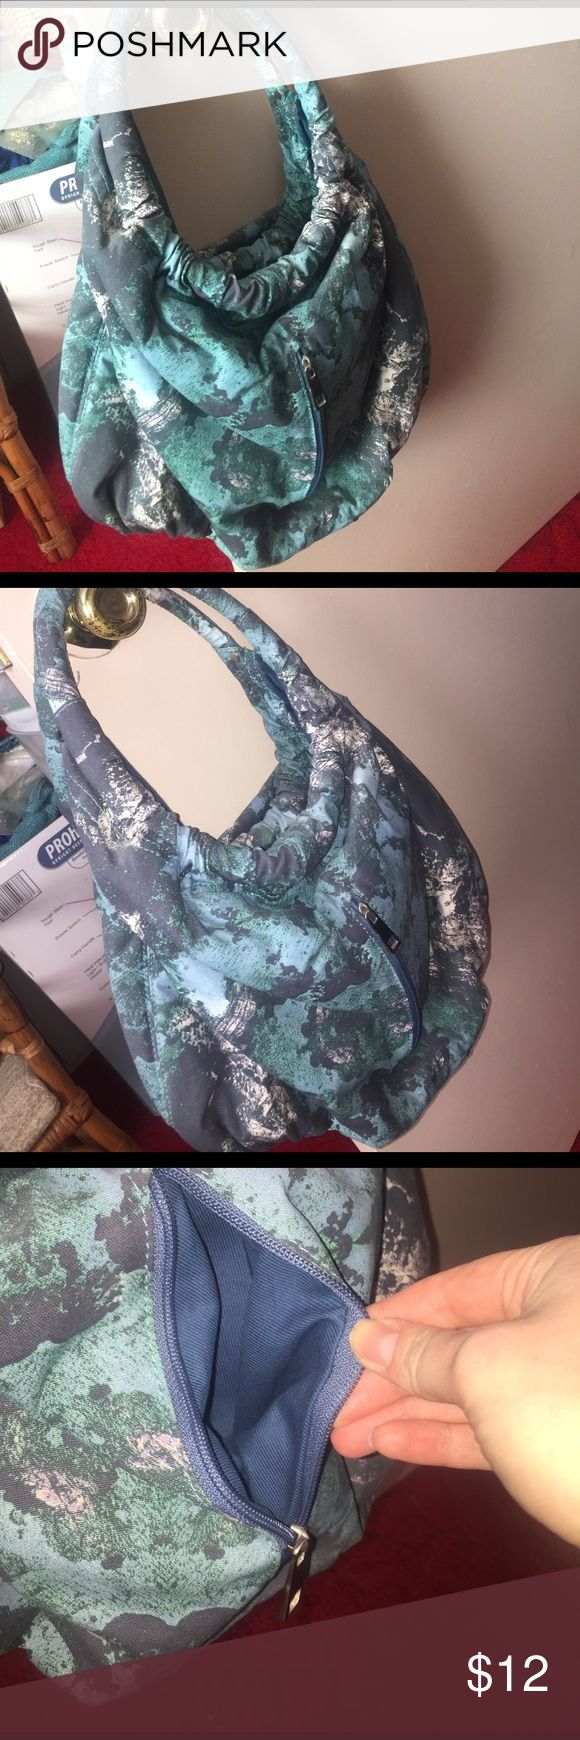 Christian Siriano hobo style Oceanic print bag This gorgeous bag from Christian Siriano for Payless is adorable and has only been used once. It's a hobo style and very roomy!  It's his famous Oceanic print that was also shown on the runway! Smoke free home :) Christian Siriano Bags Hobos